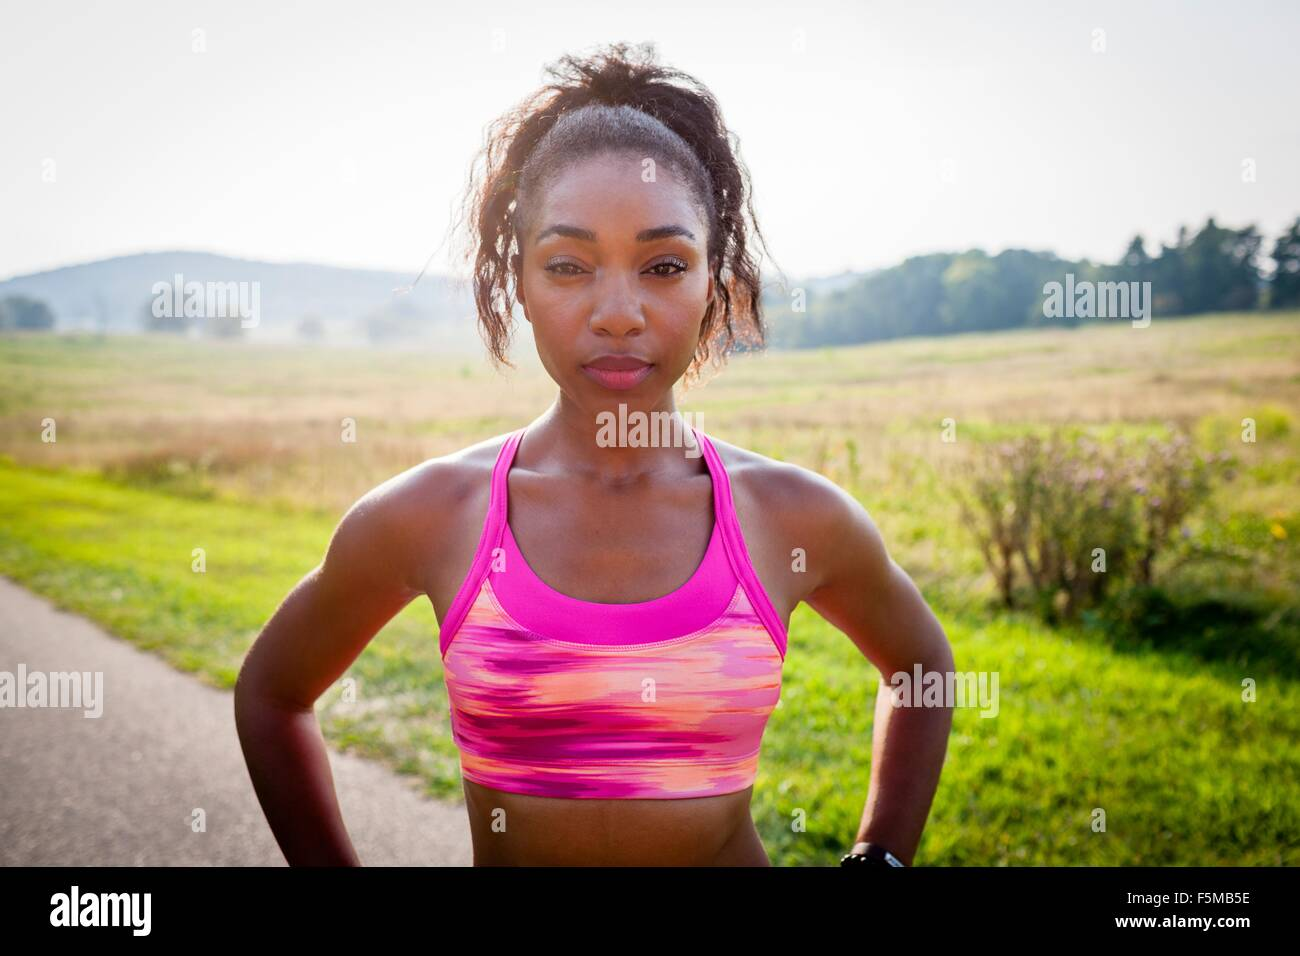 Portrait of young female runner with hands on hips in rural park - Stock Image